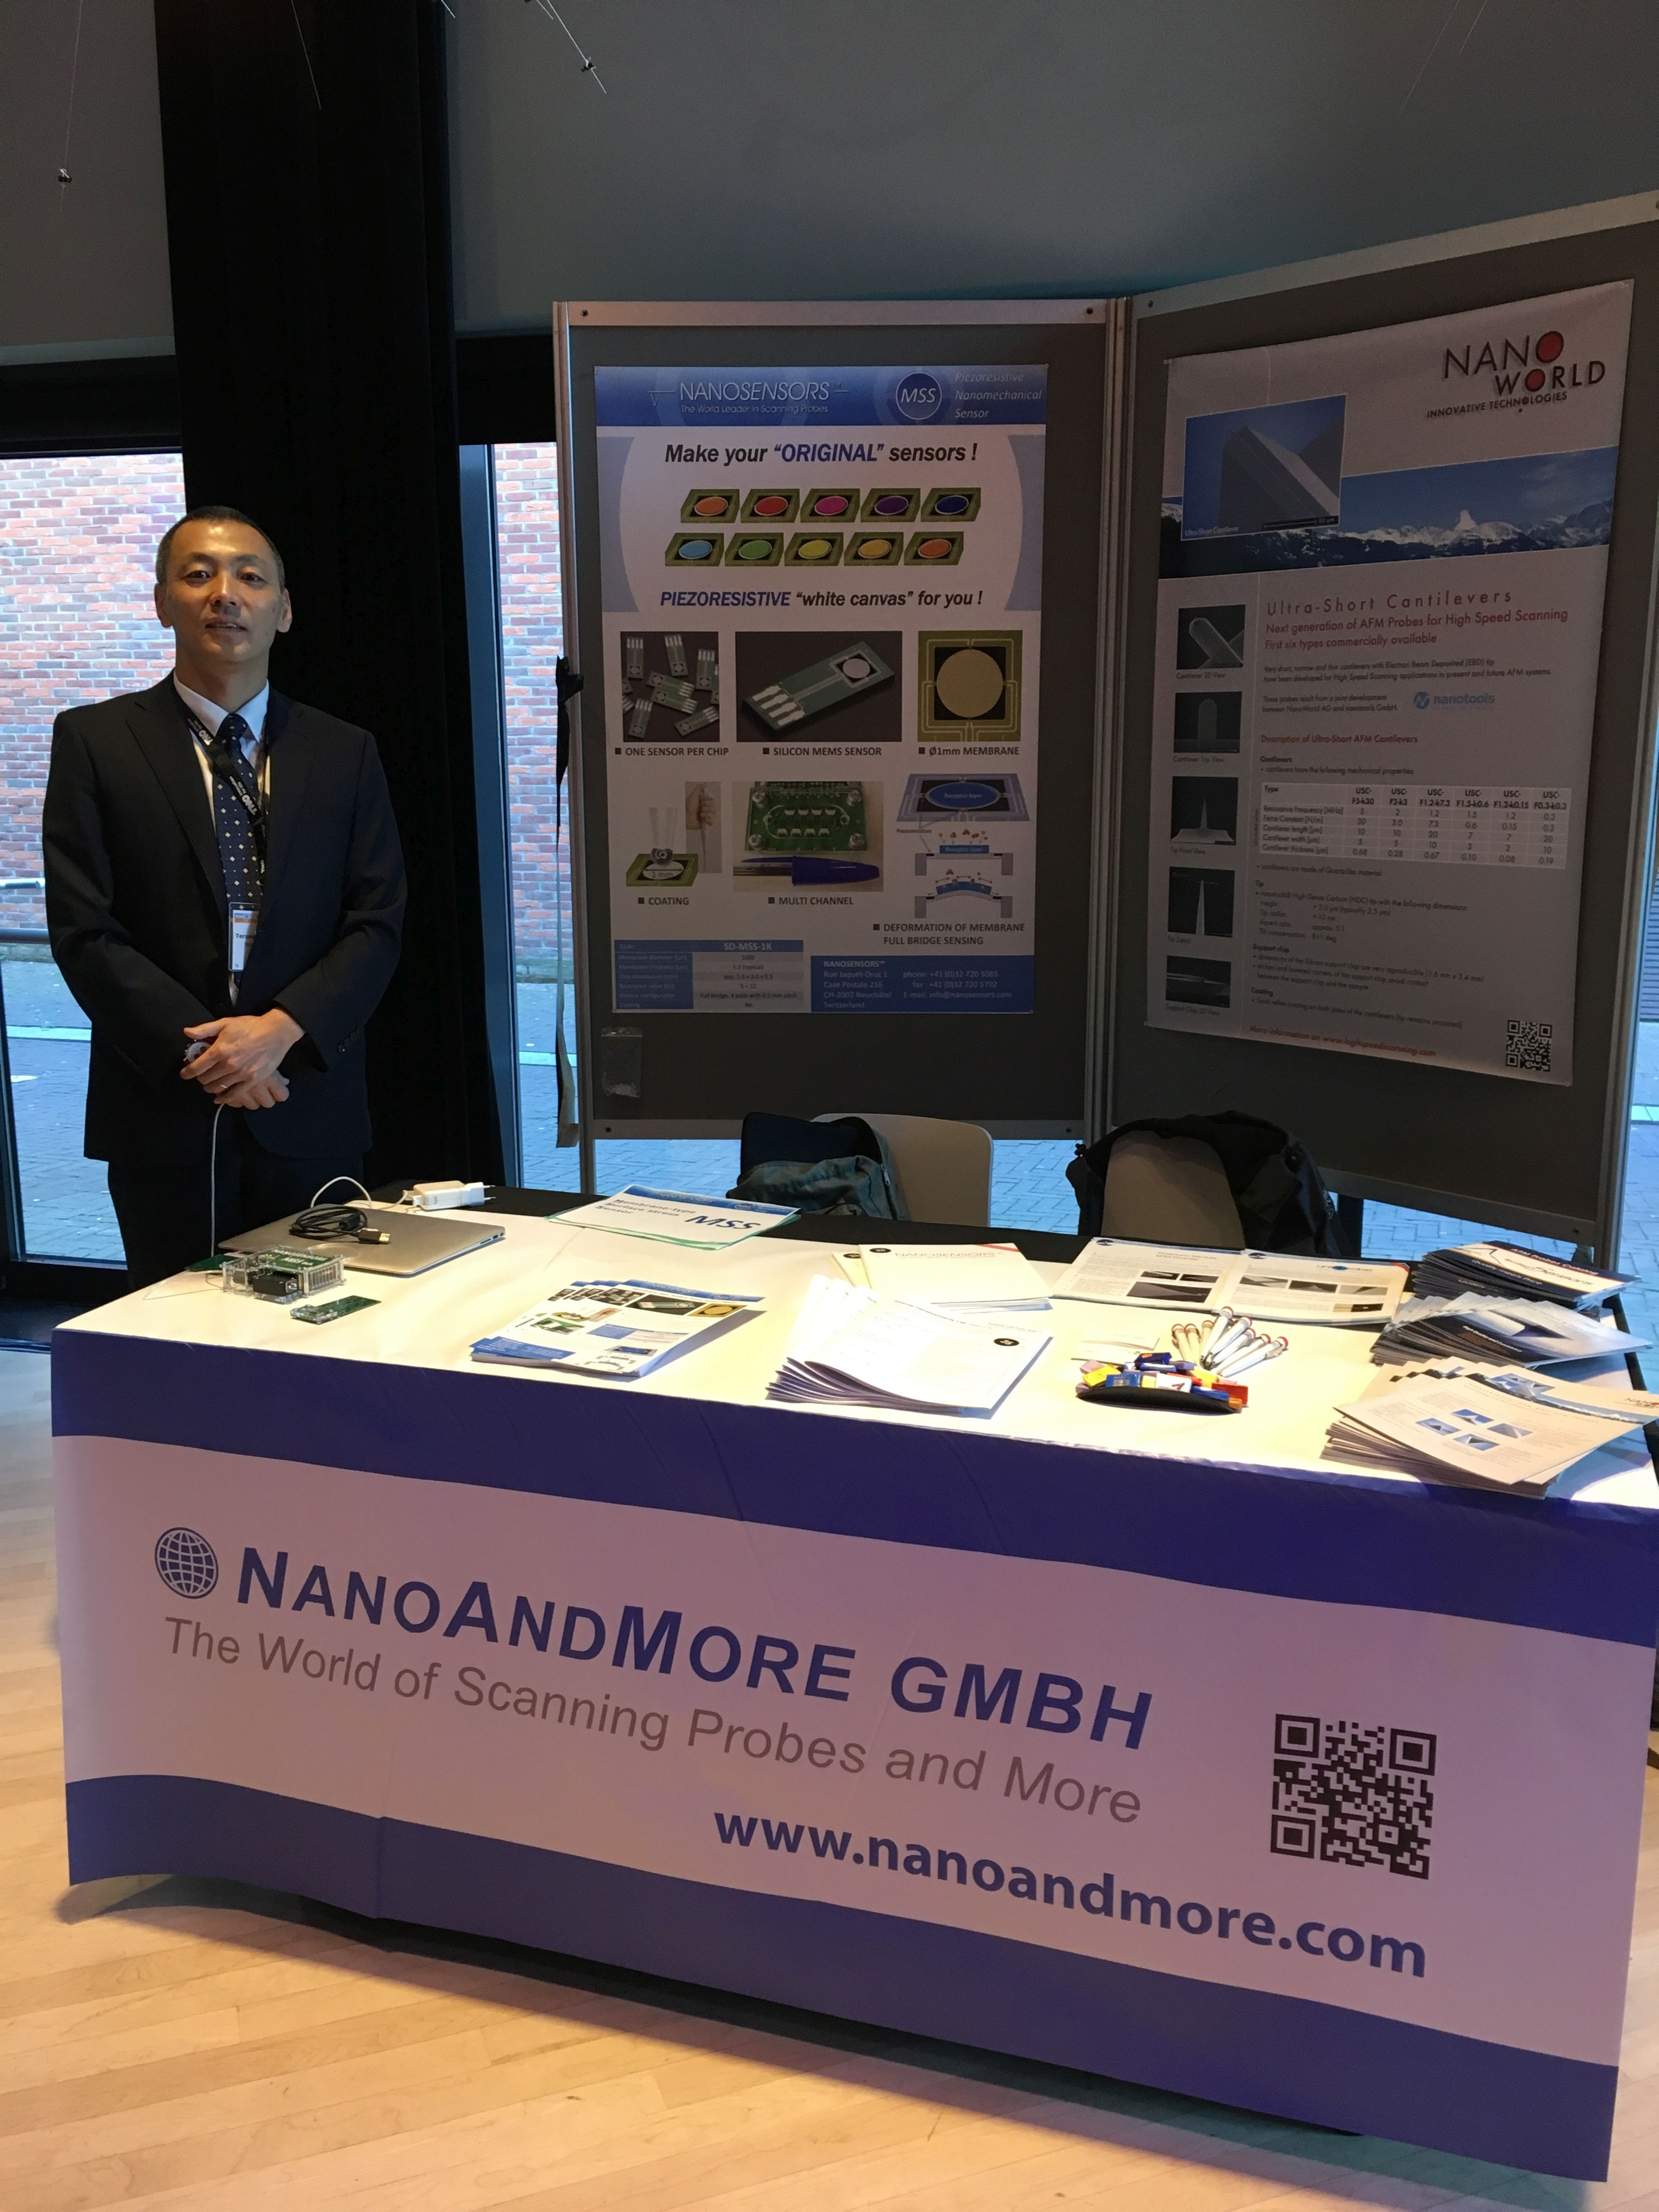 MSS Sensors Demo at the NanoAndMore booth at NMC